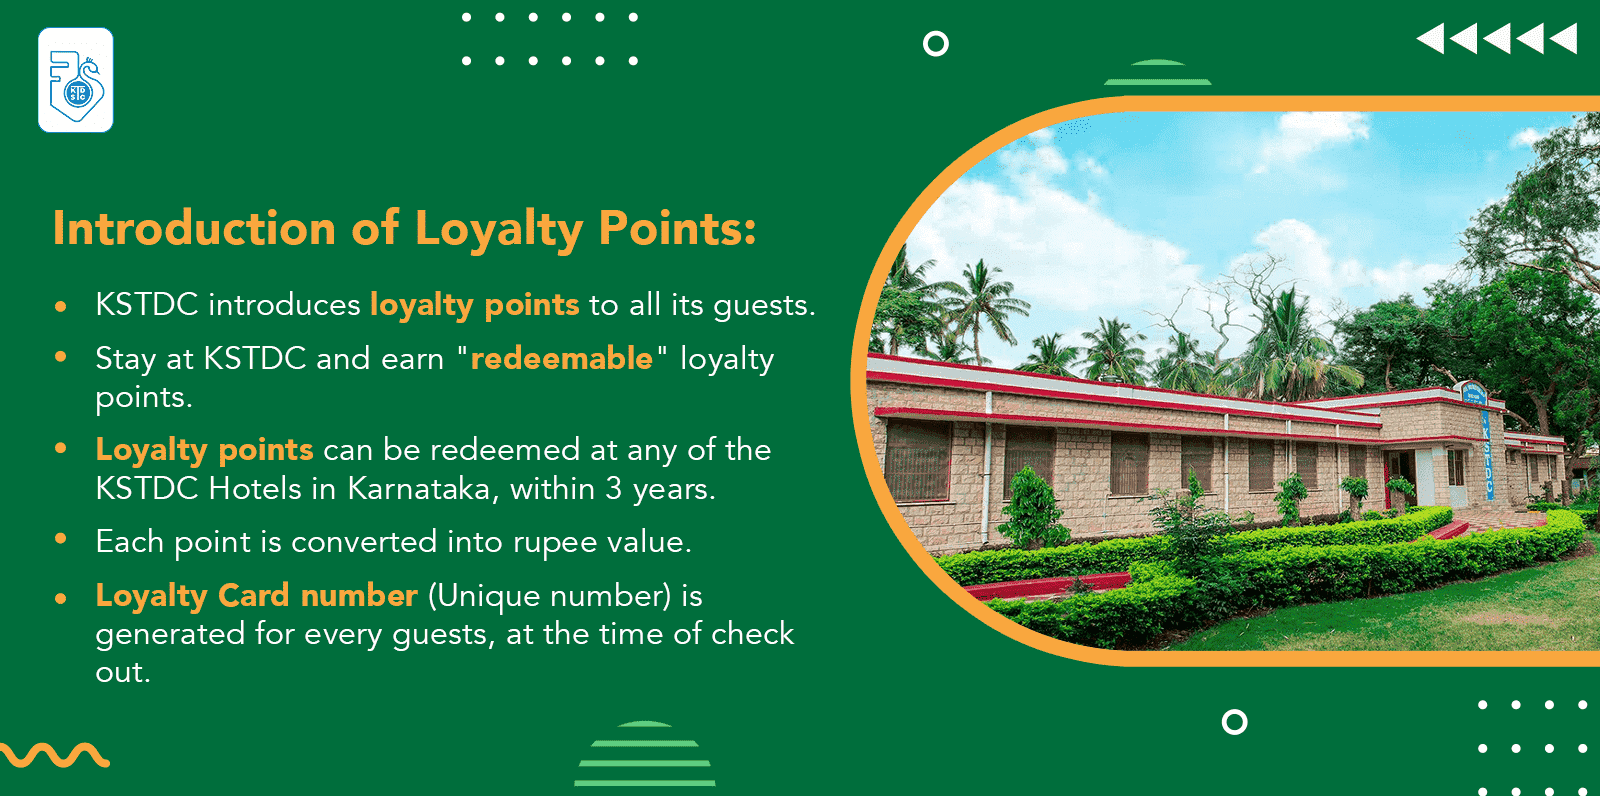 Introduction of Loyalty Points at KSTDC